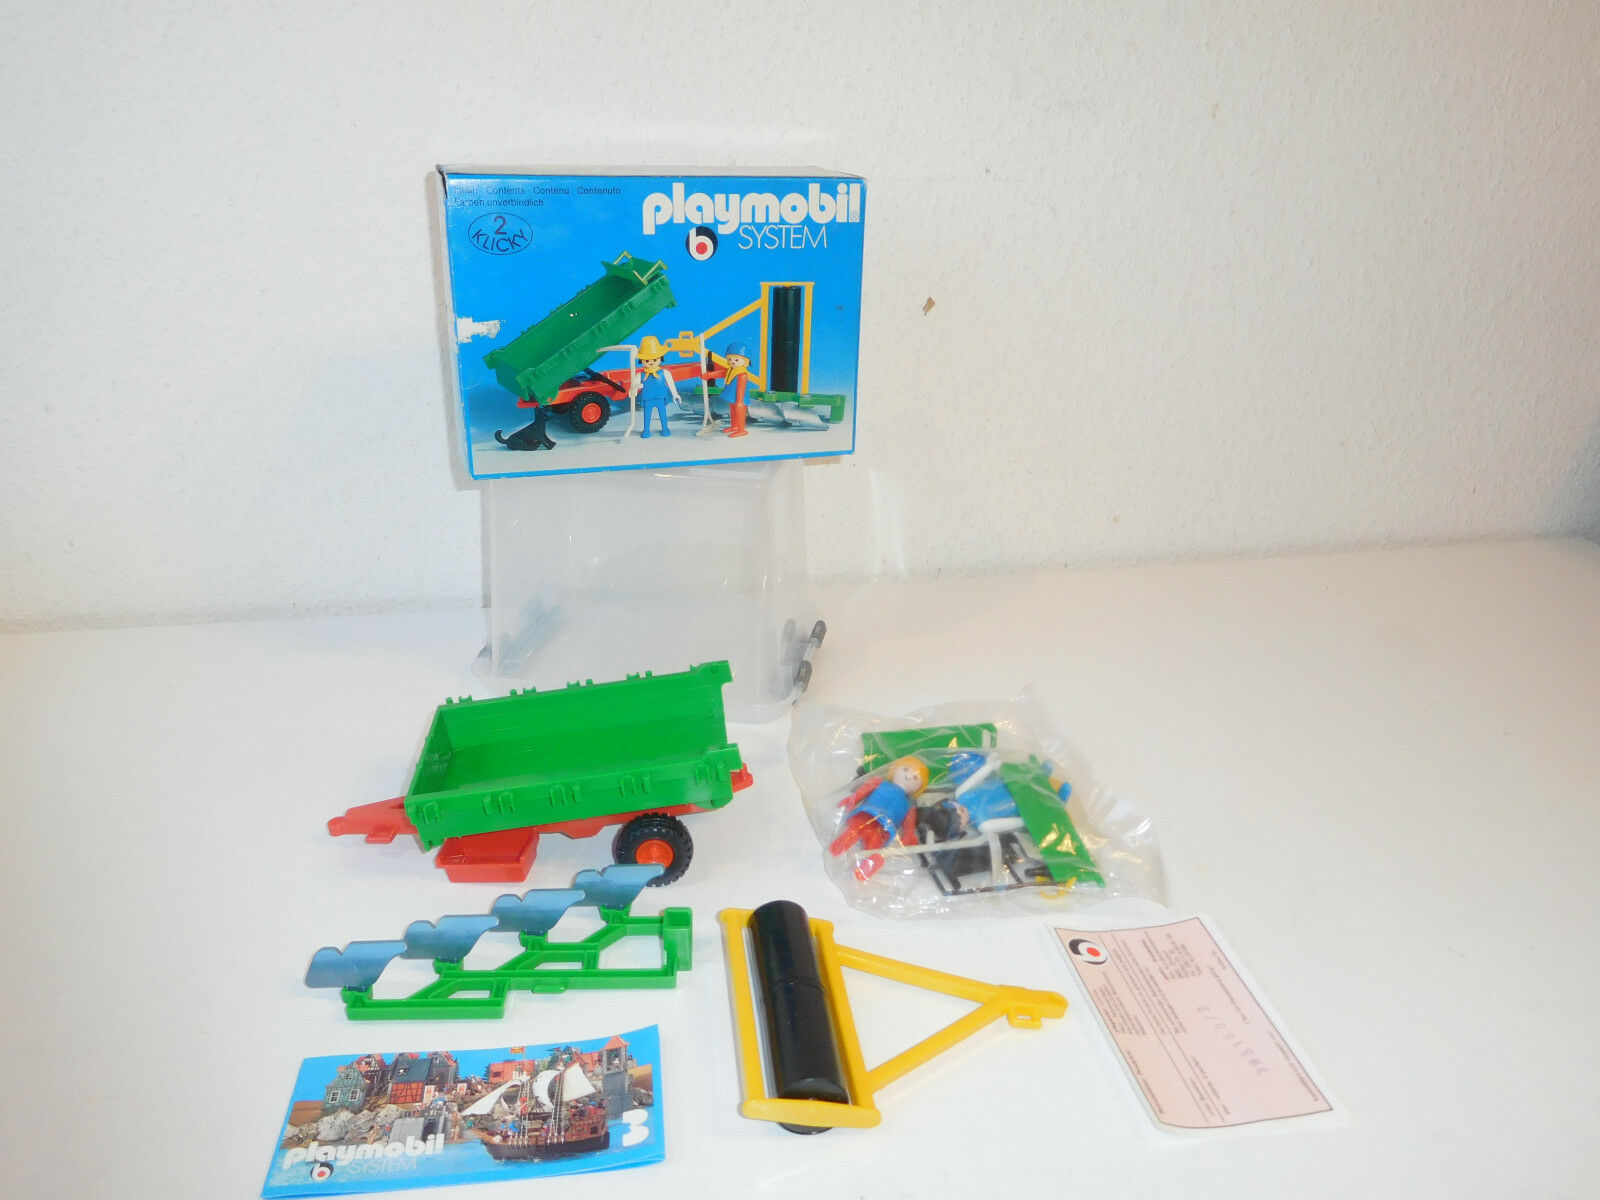 Playmobil 3501 mib new OVP